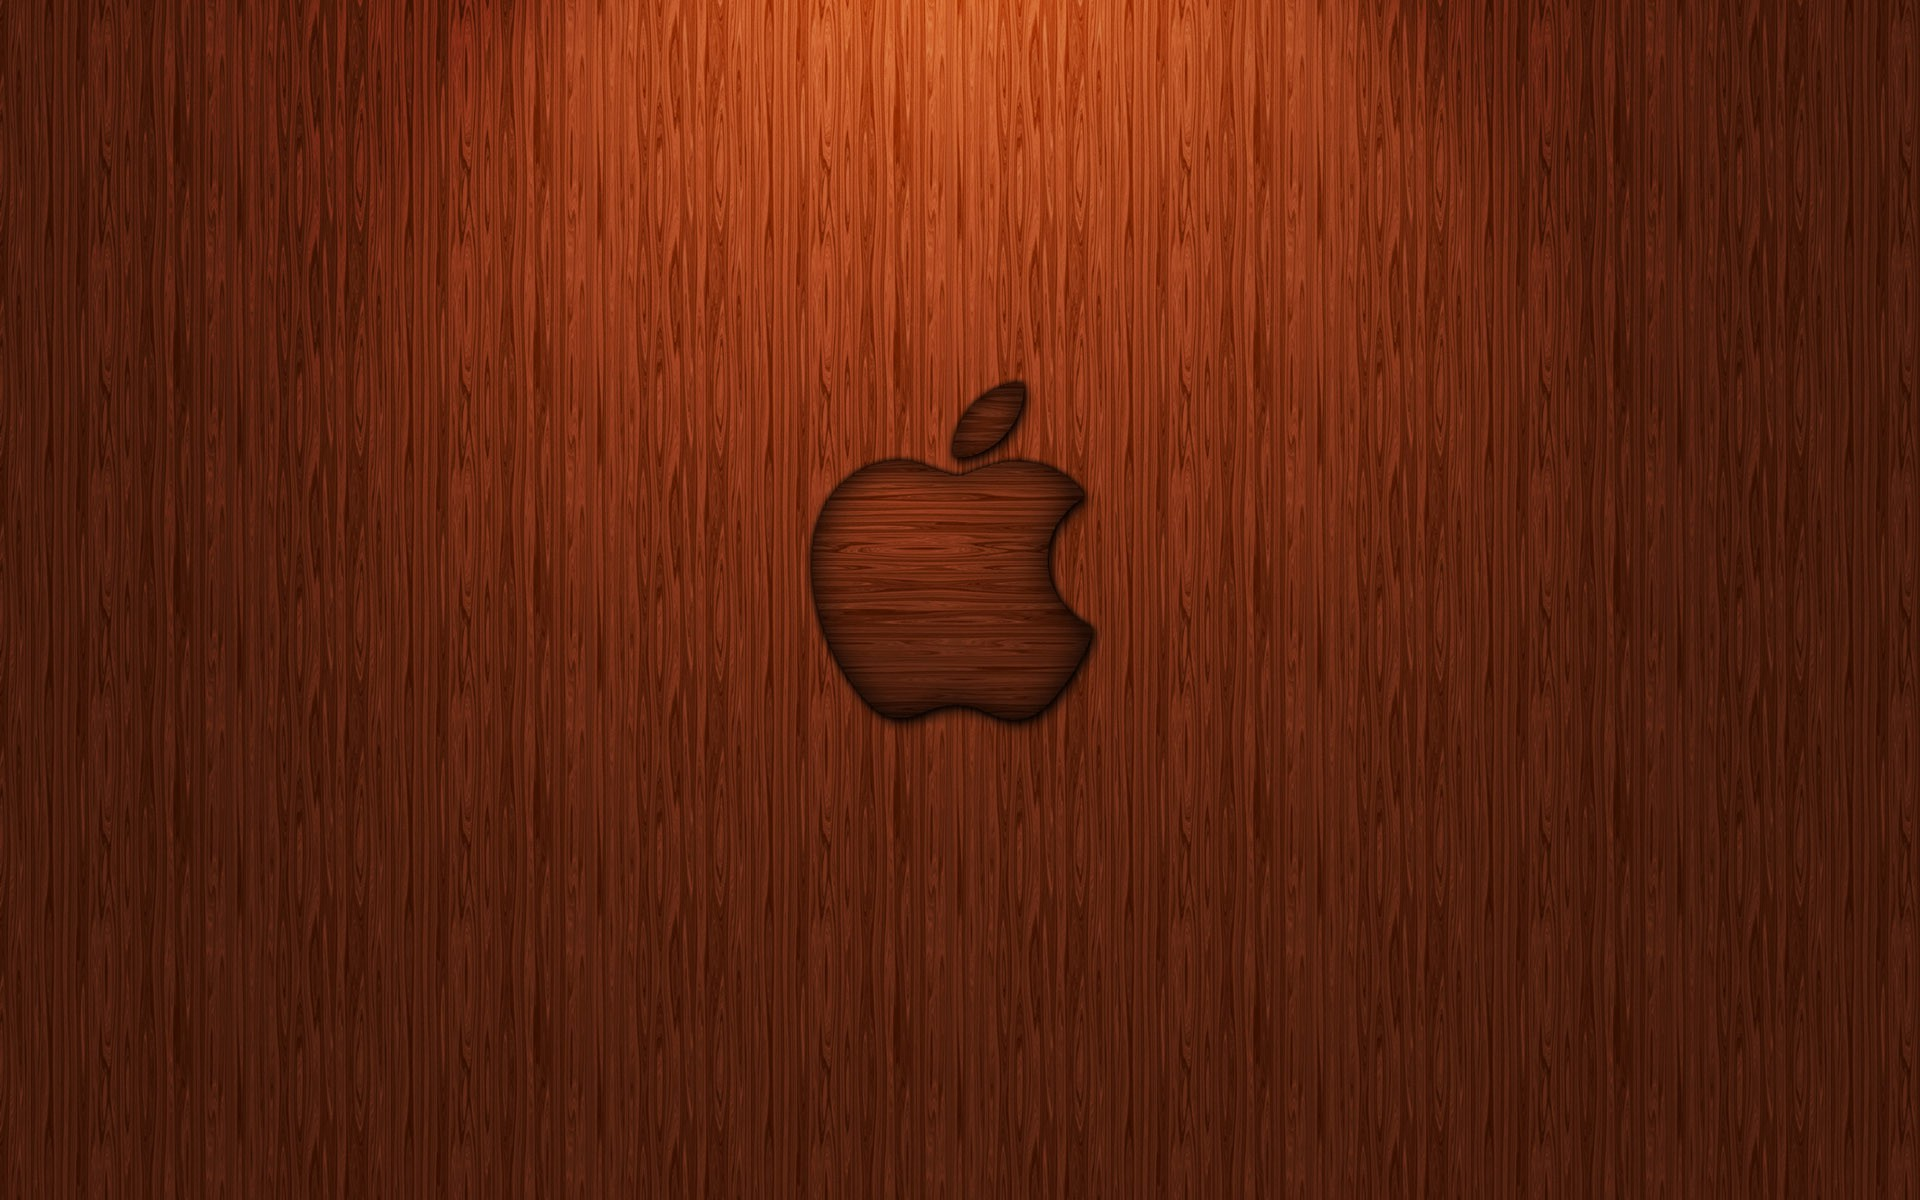 apple logo wallpaper | Apple, Wood, Wallpaper! | Pinterest | Logos